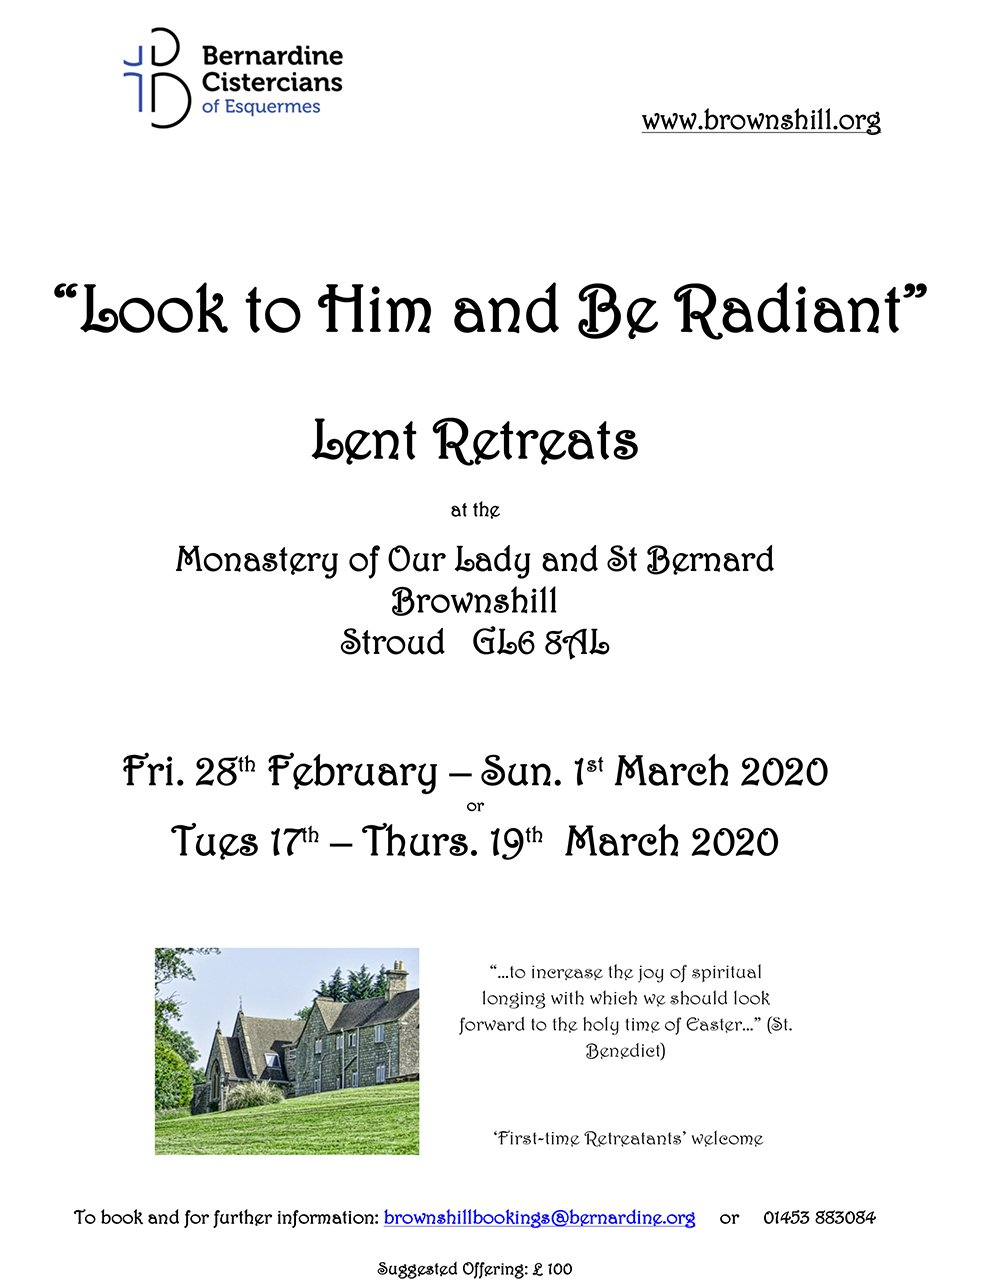 Look to Him and Be Radiant - Lent Retreats @ Monastery of Our Lady and St Bernard Brownshill Stroud | Brownshill | England | United Kingdom